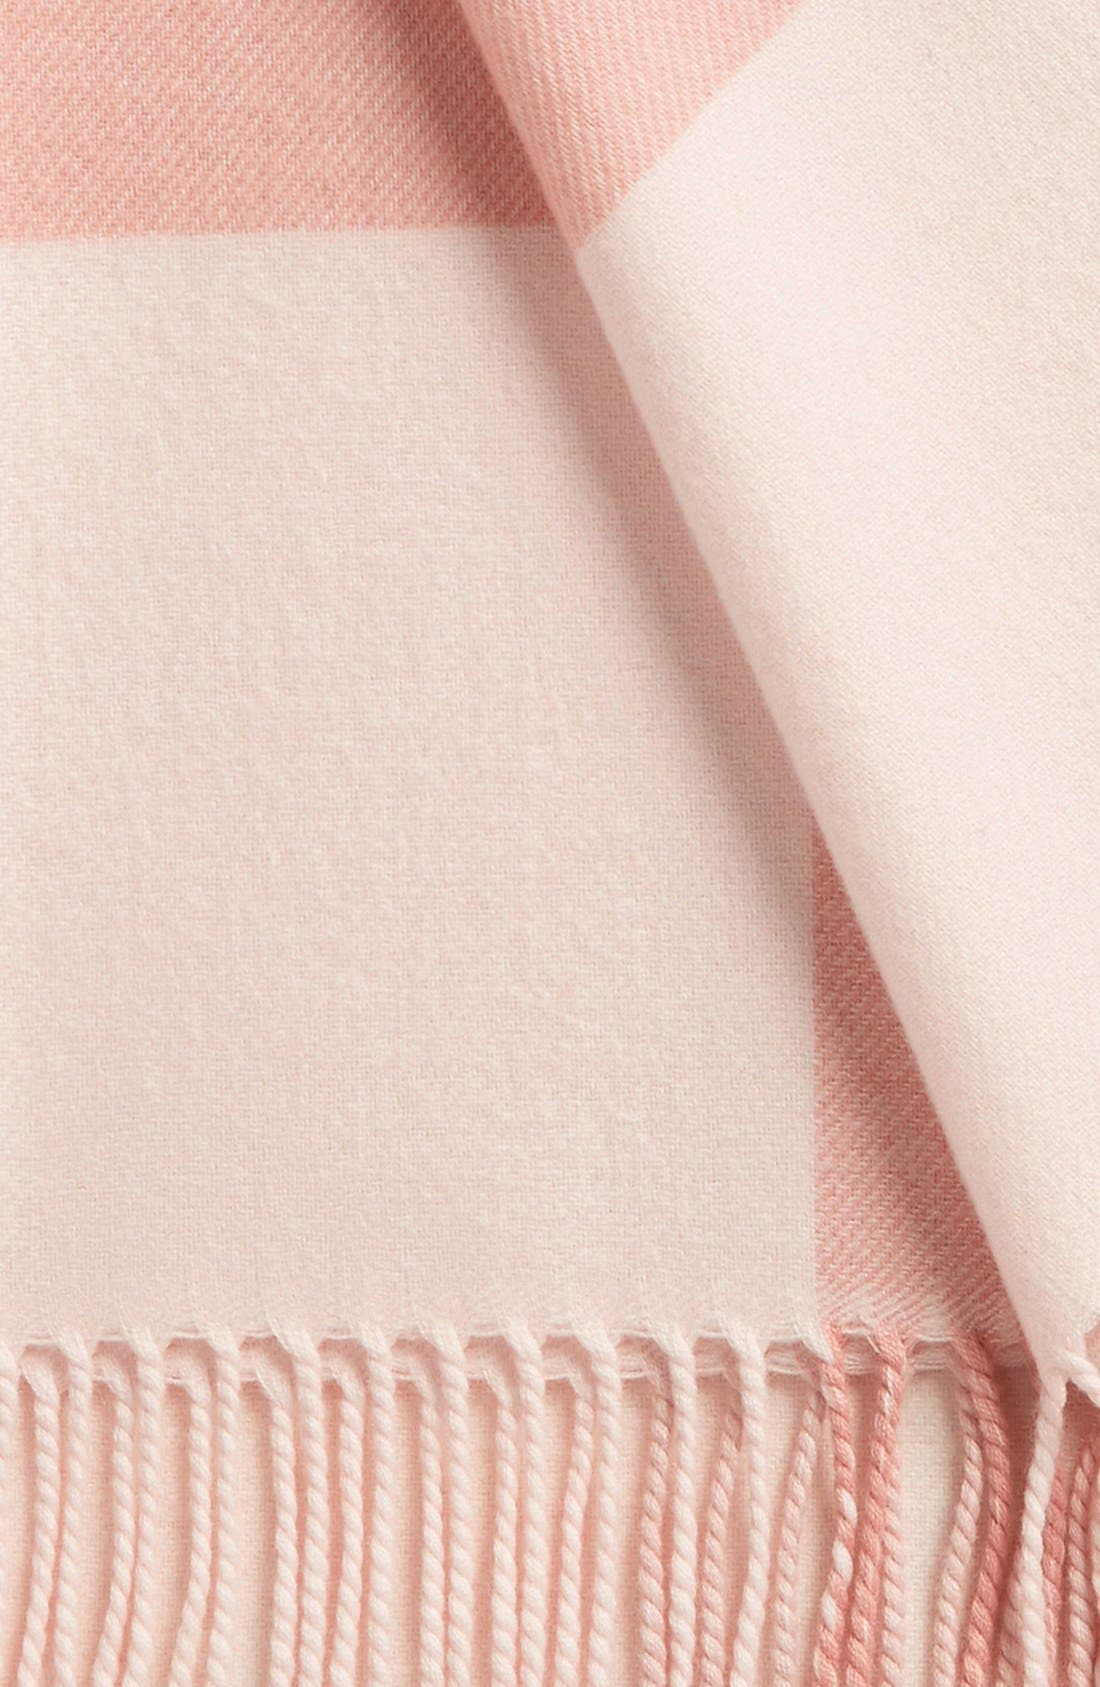 Merino Wool Baby Blanket,                             Alternate thumbnail 2, color,                             Powder Pink